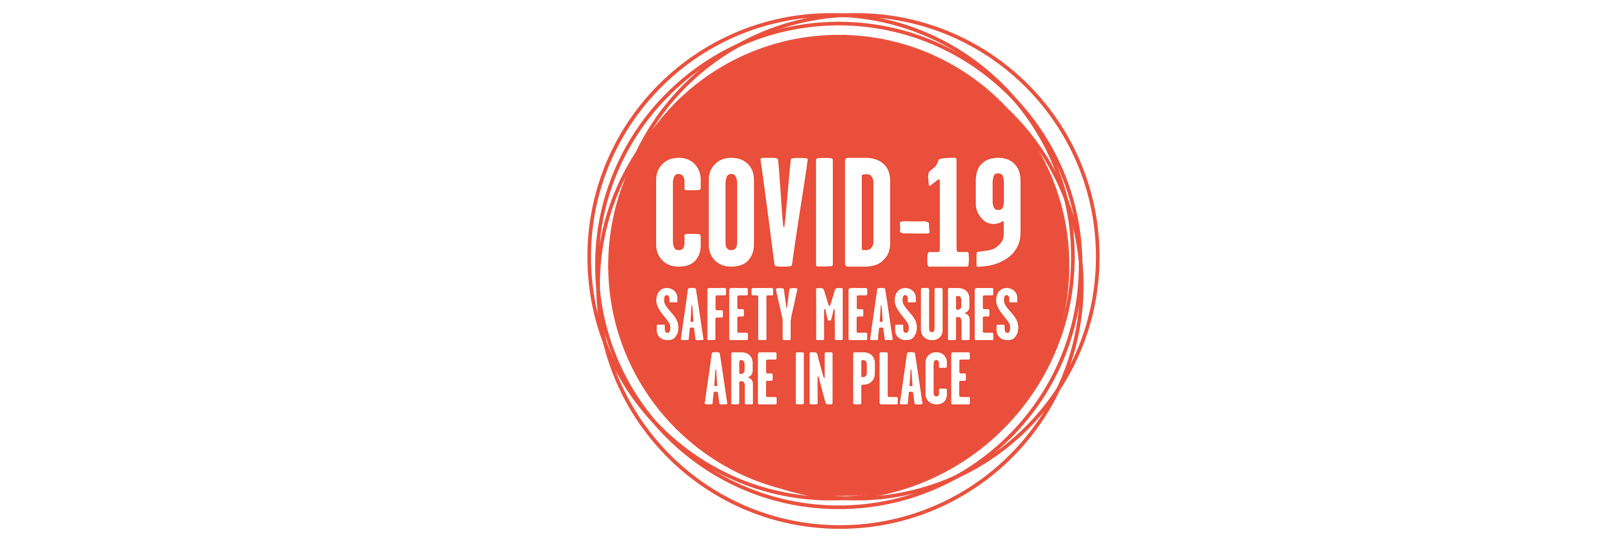 COVID-19 Safety Measures & Procedures